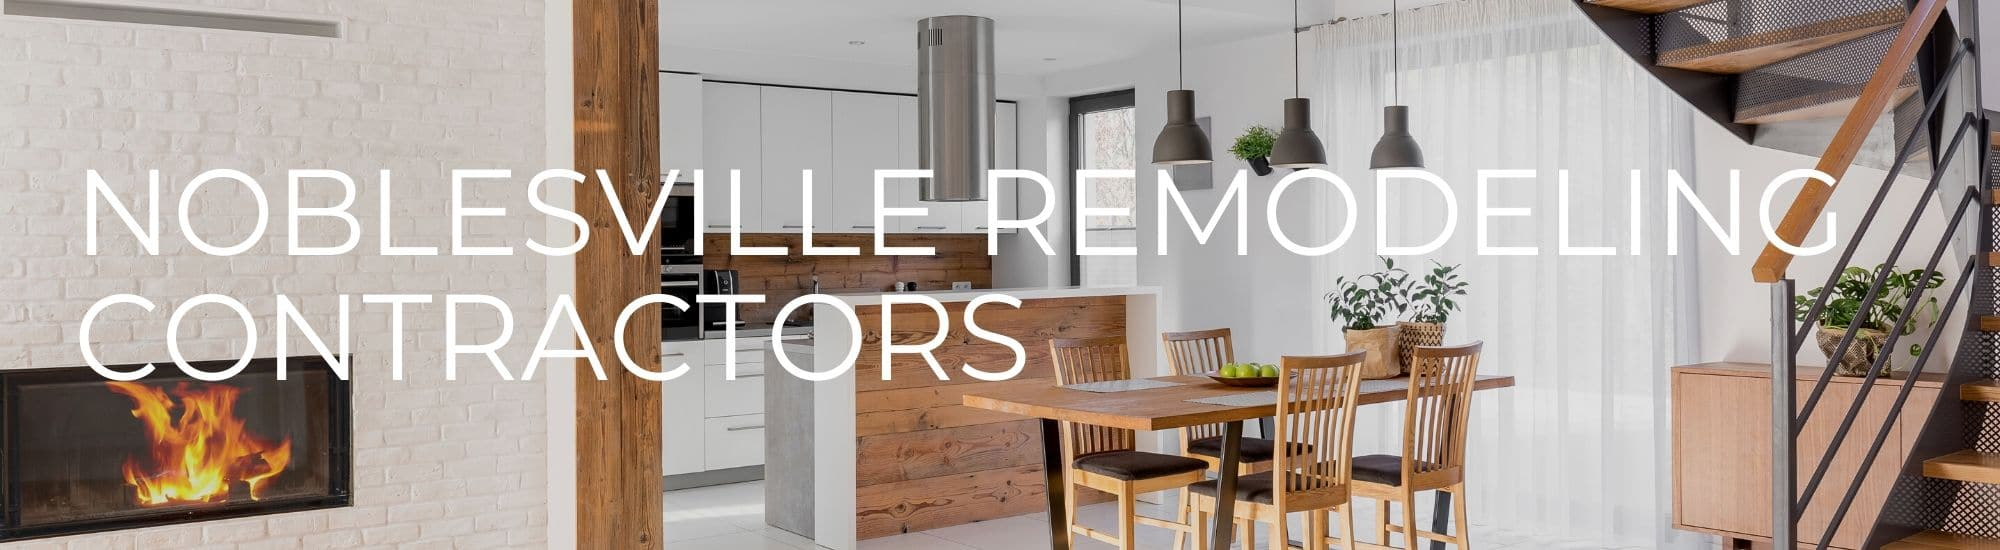 noblesville remodeling contractors